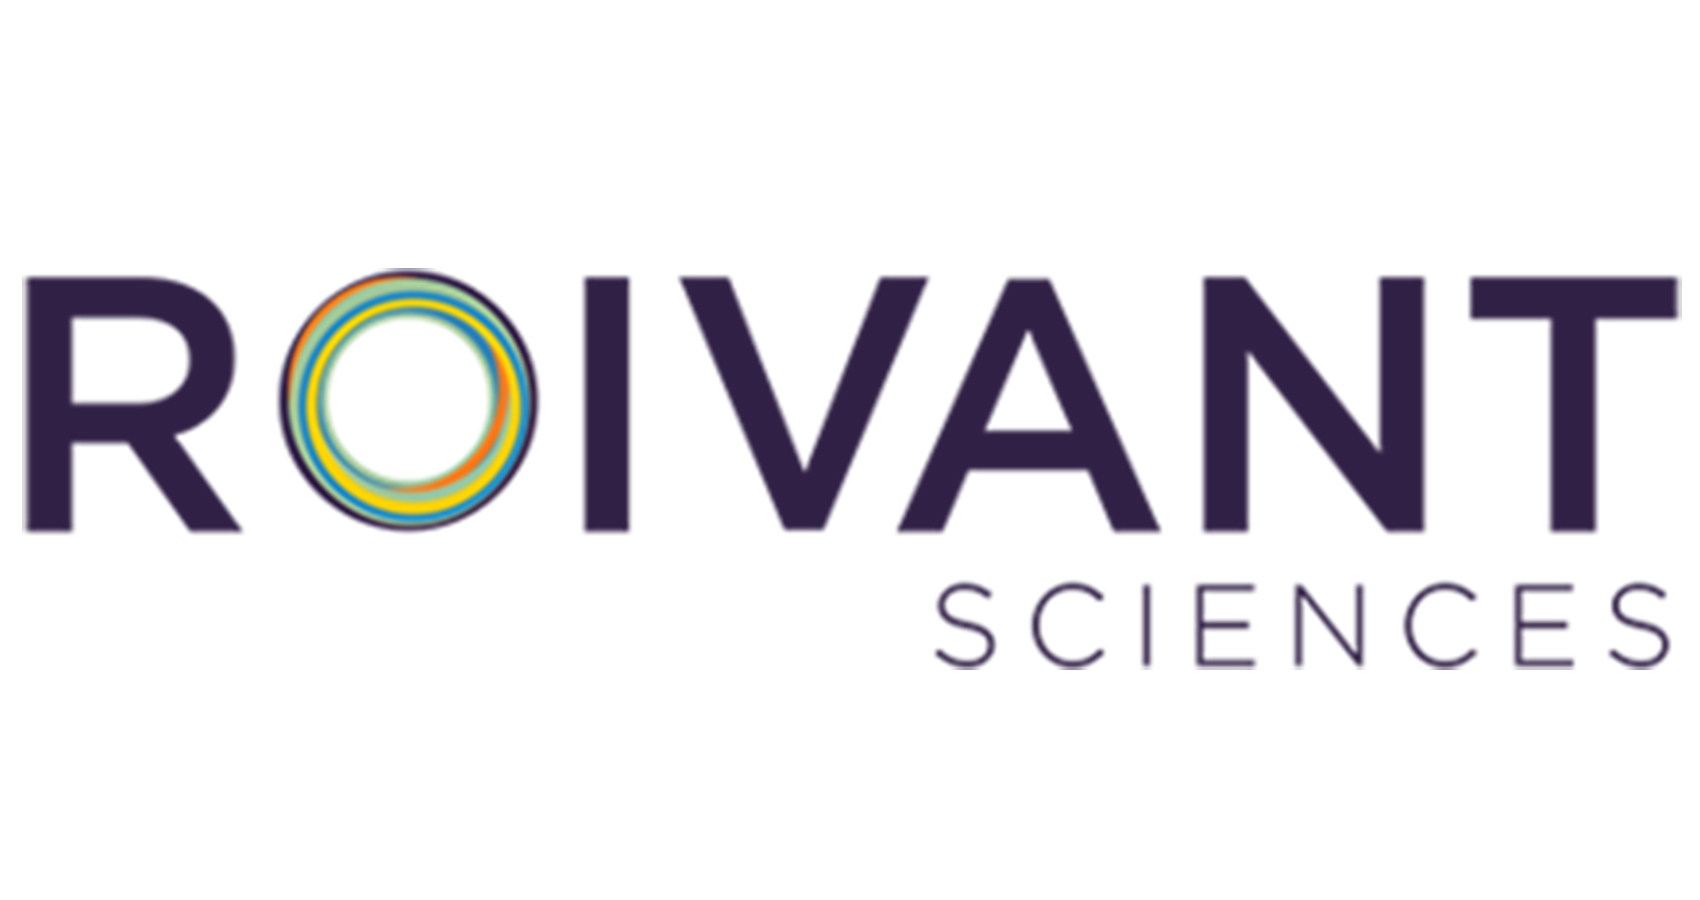 Immunovant Receives $200 Million Strategic Investment from Roivant Sciences Proceeds will fund continued development of IMVT-1401 in multiple indications